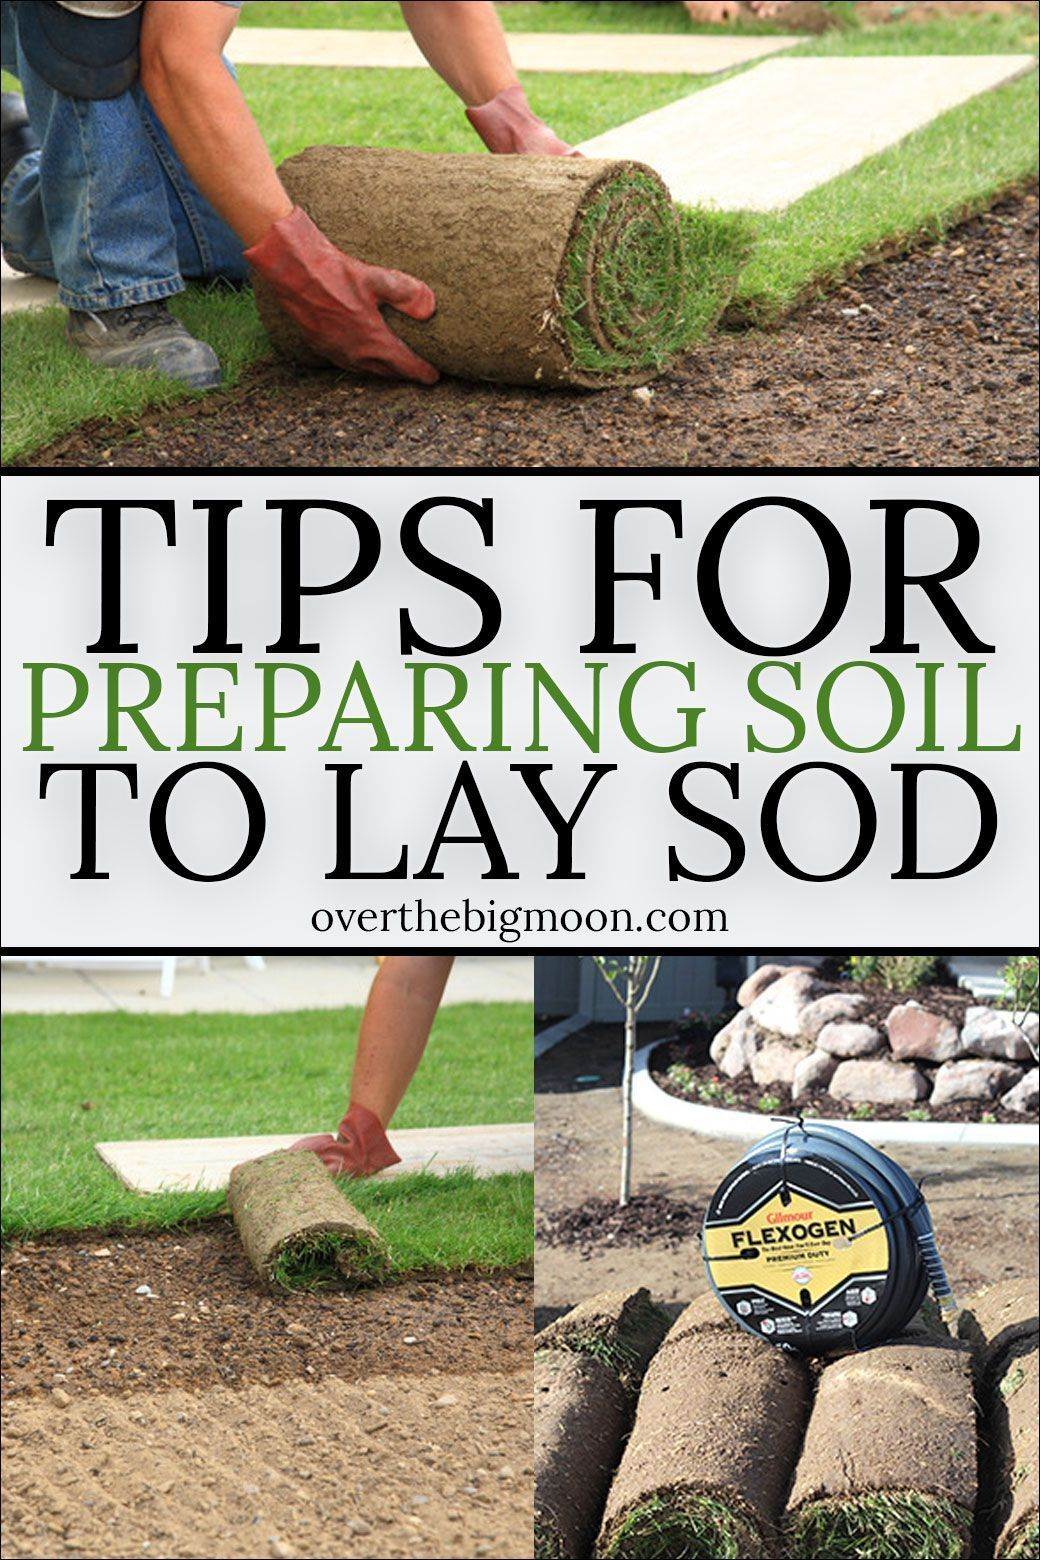 Tips for Soil Preparation Before Laying Sod in 2020